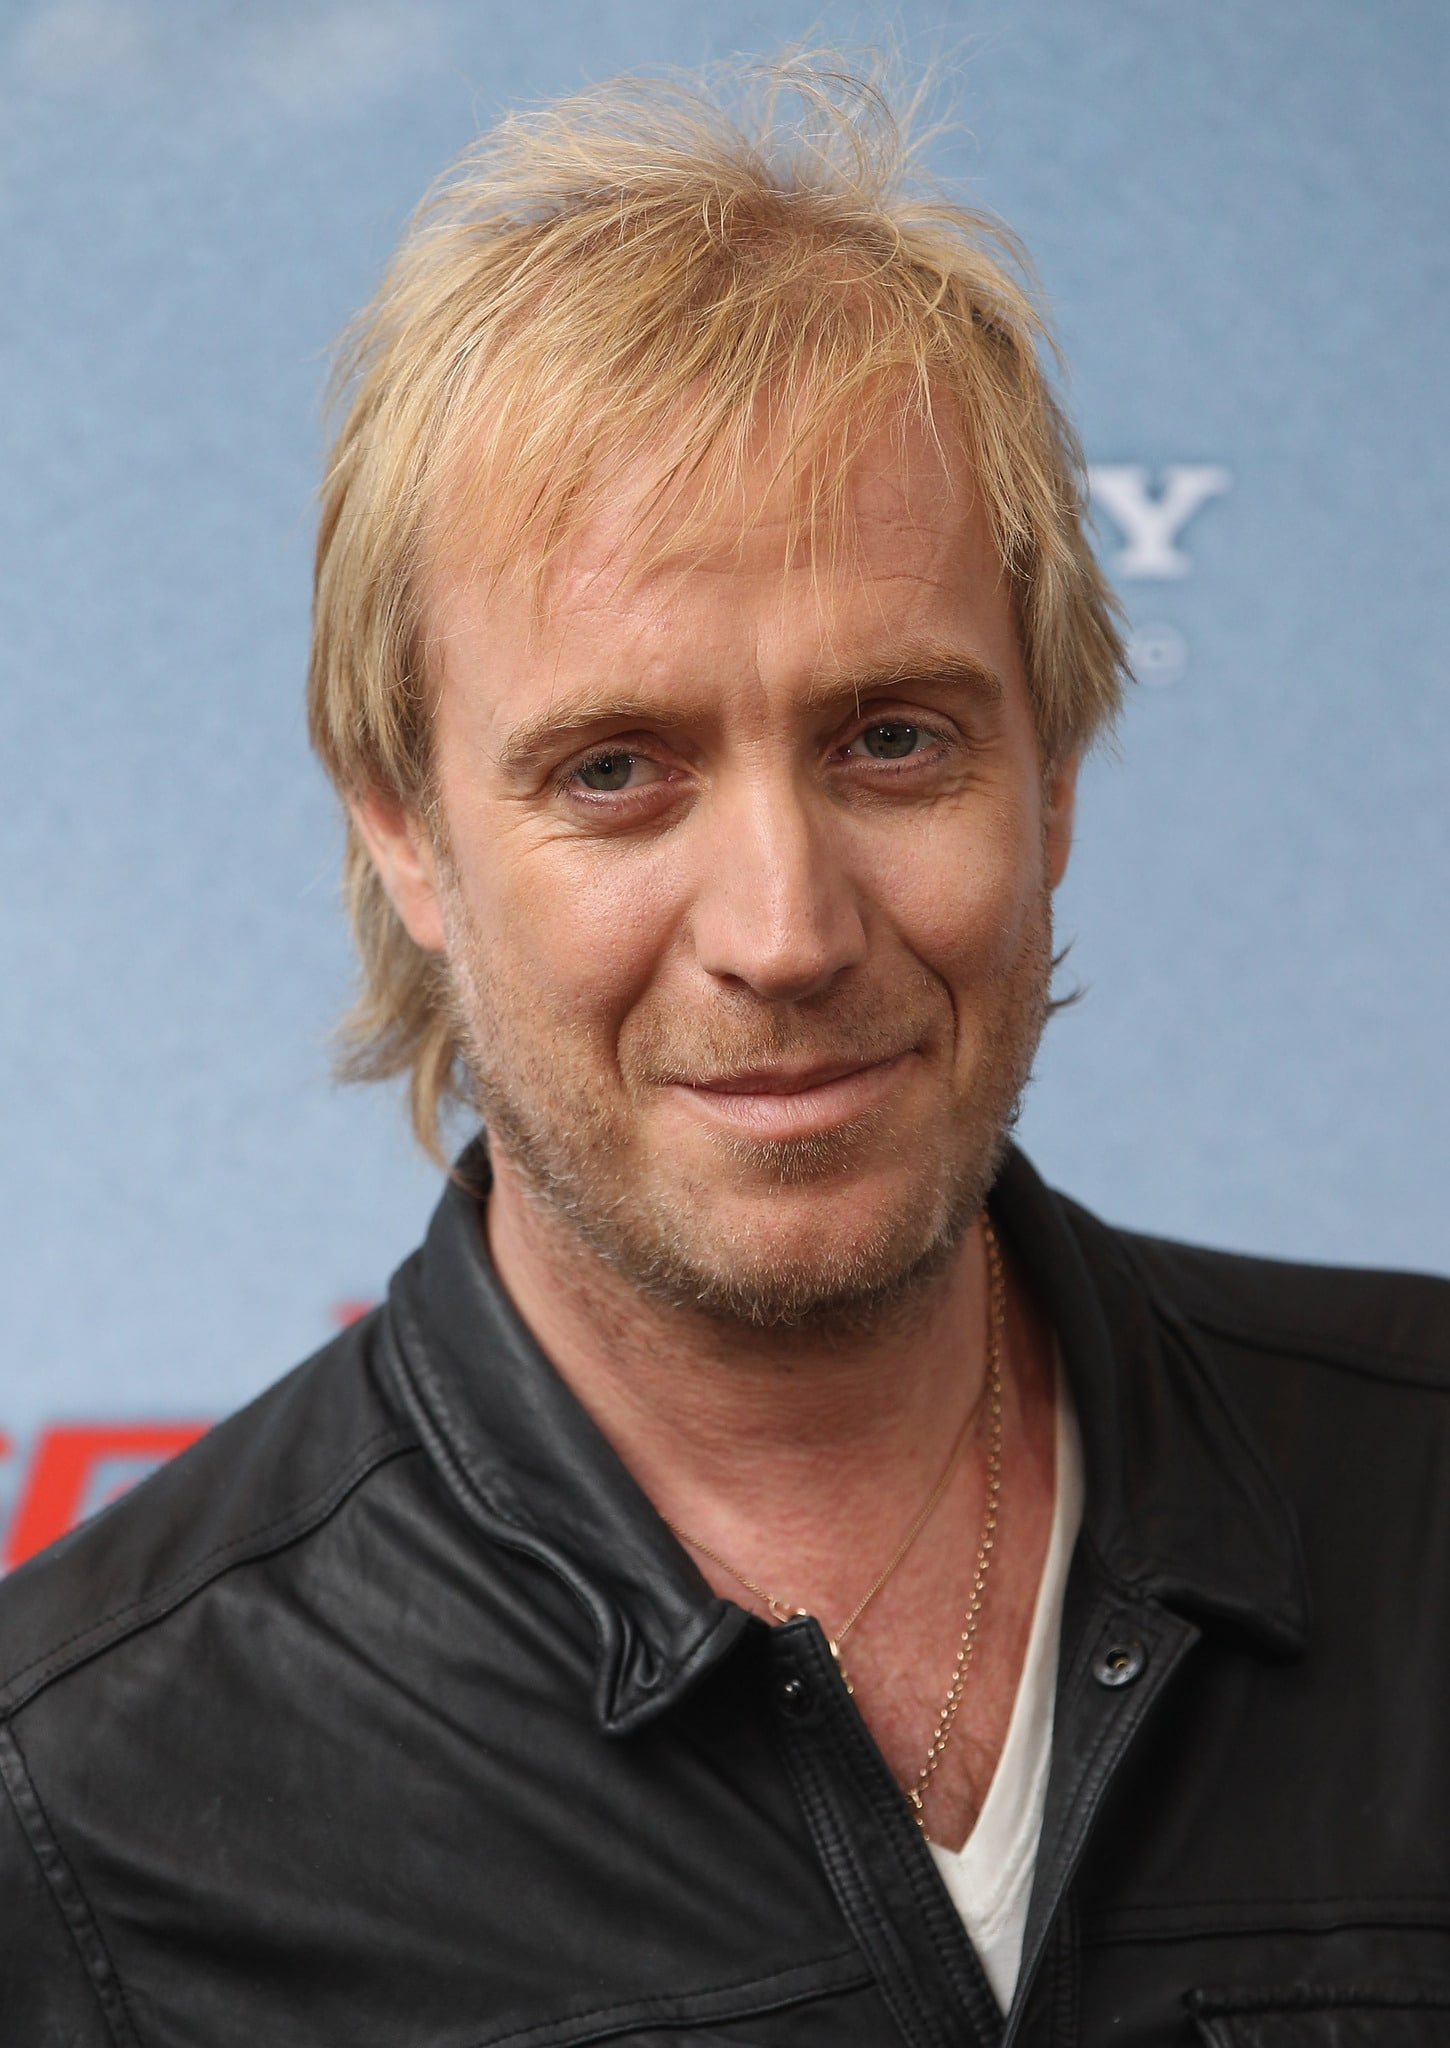 Rhys Ifans Welsh, British Actor, Singer